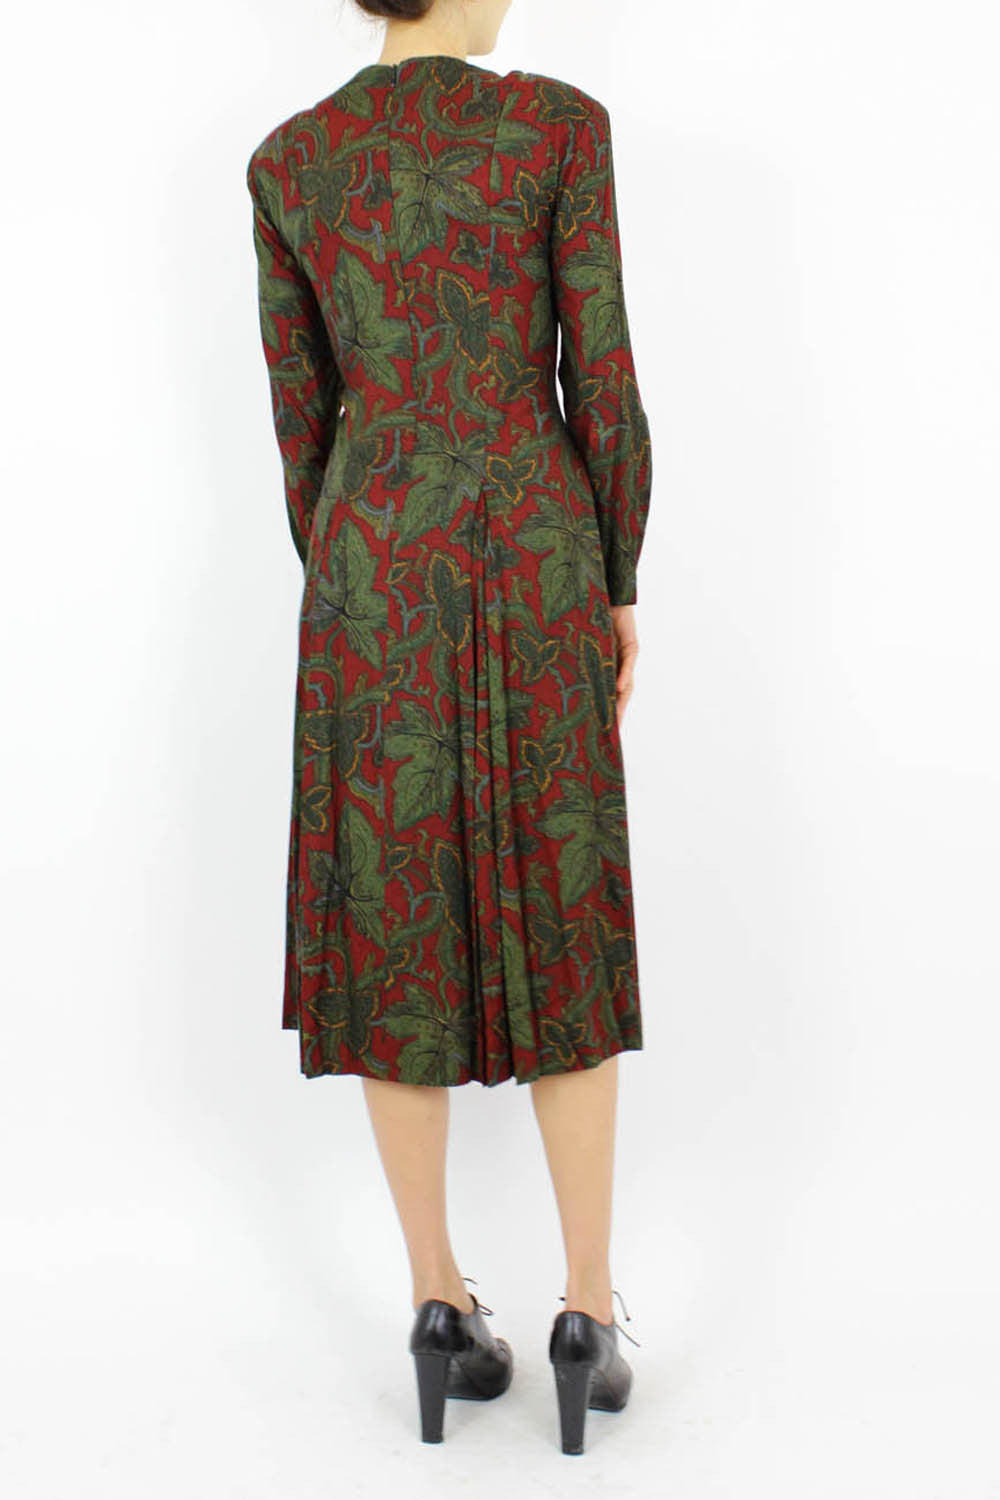 Cynthia Rowley Leaf Print Dress M